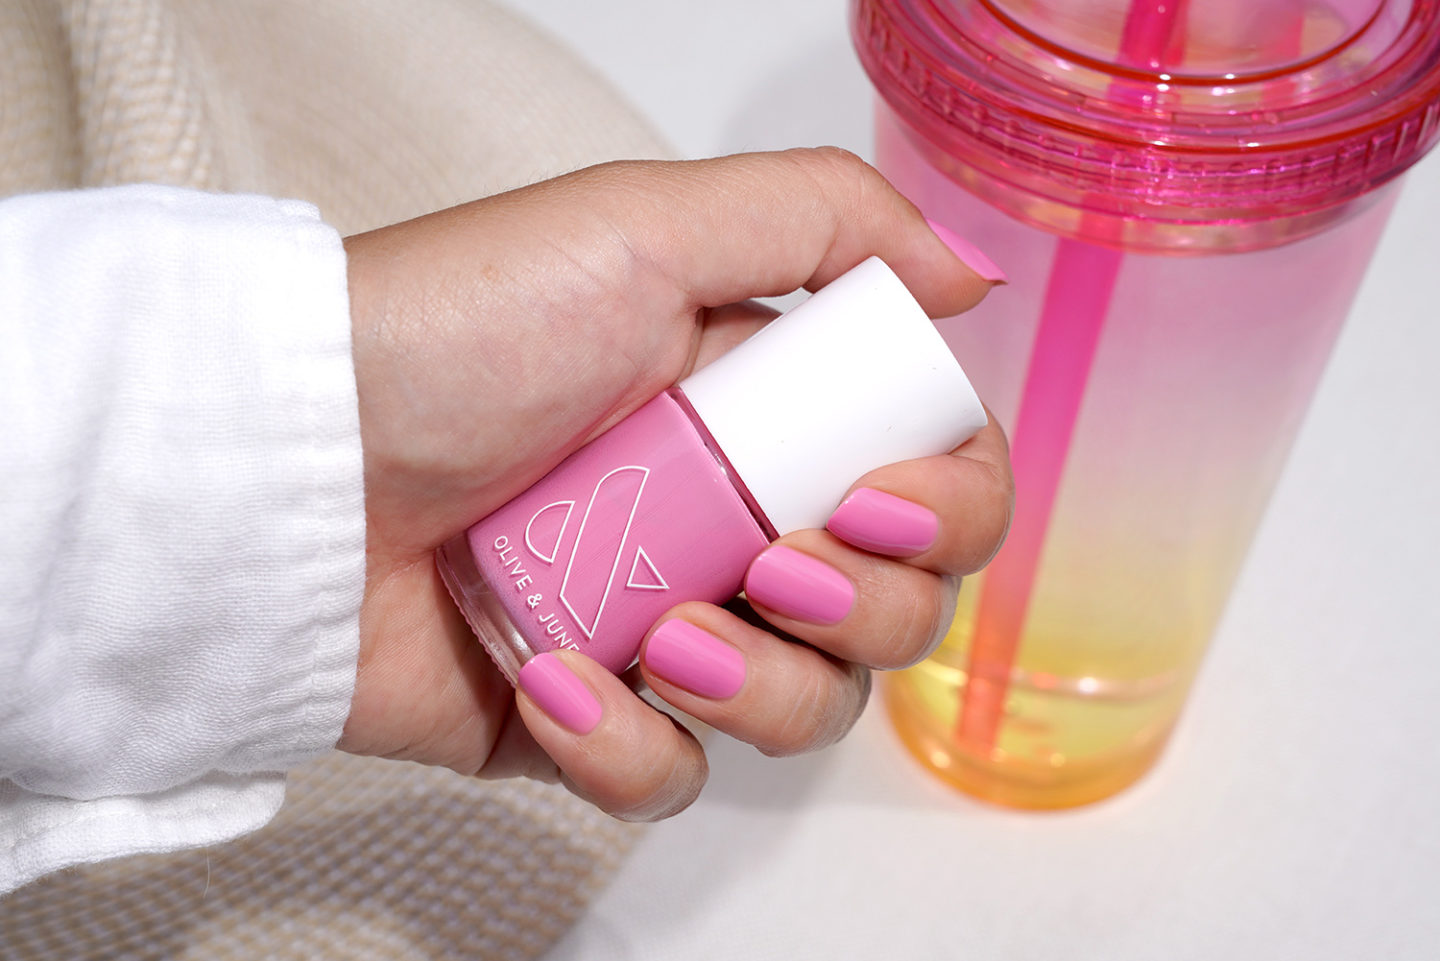 Olive and June Grateful and Kind nail polish swatch, pink